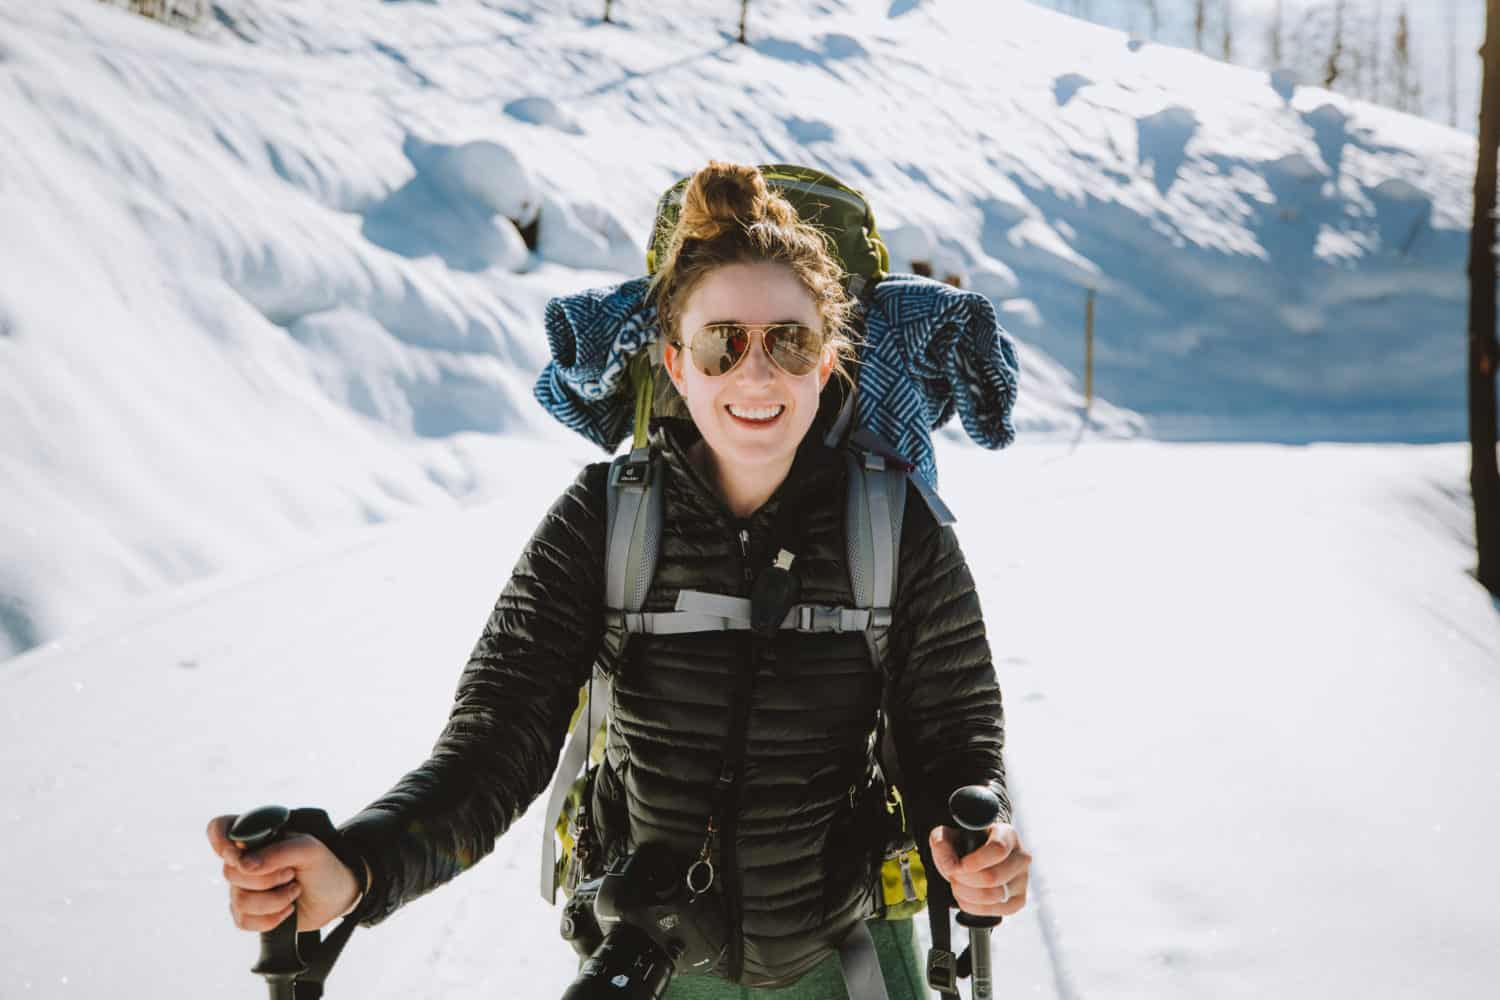 Emily Backpacking In Idaho, wedding gifts for outdoorsy couple